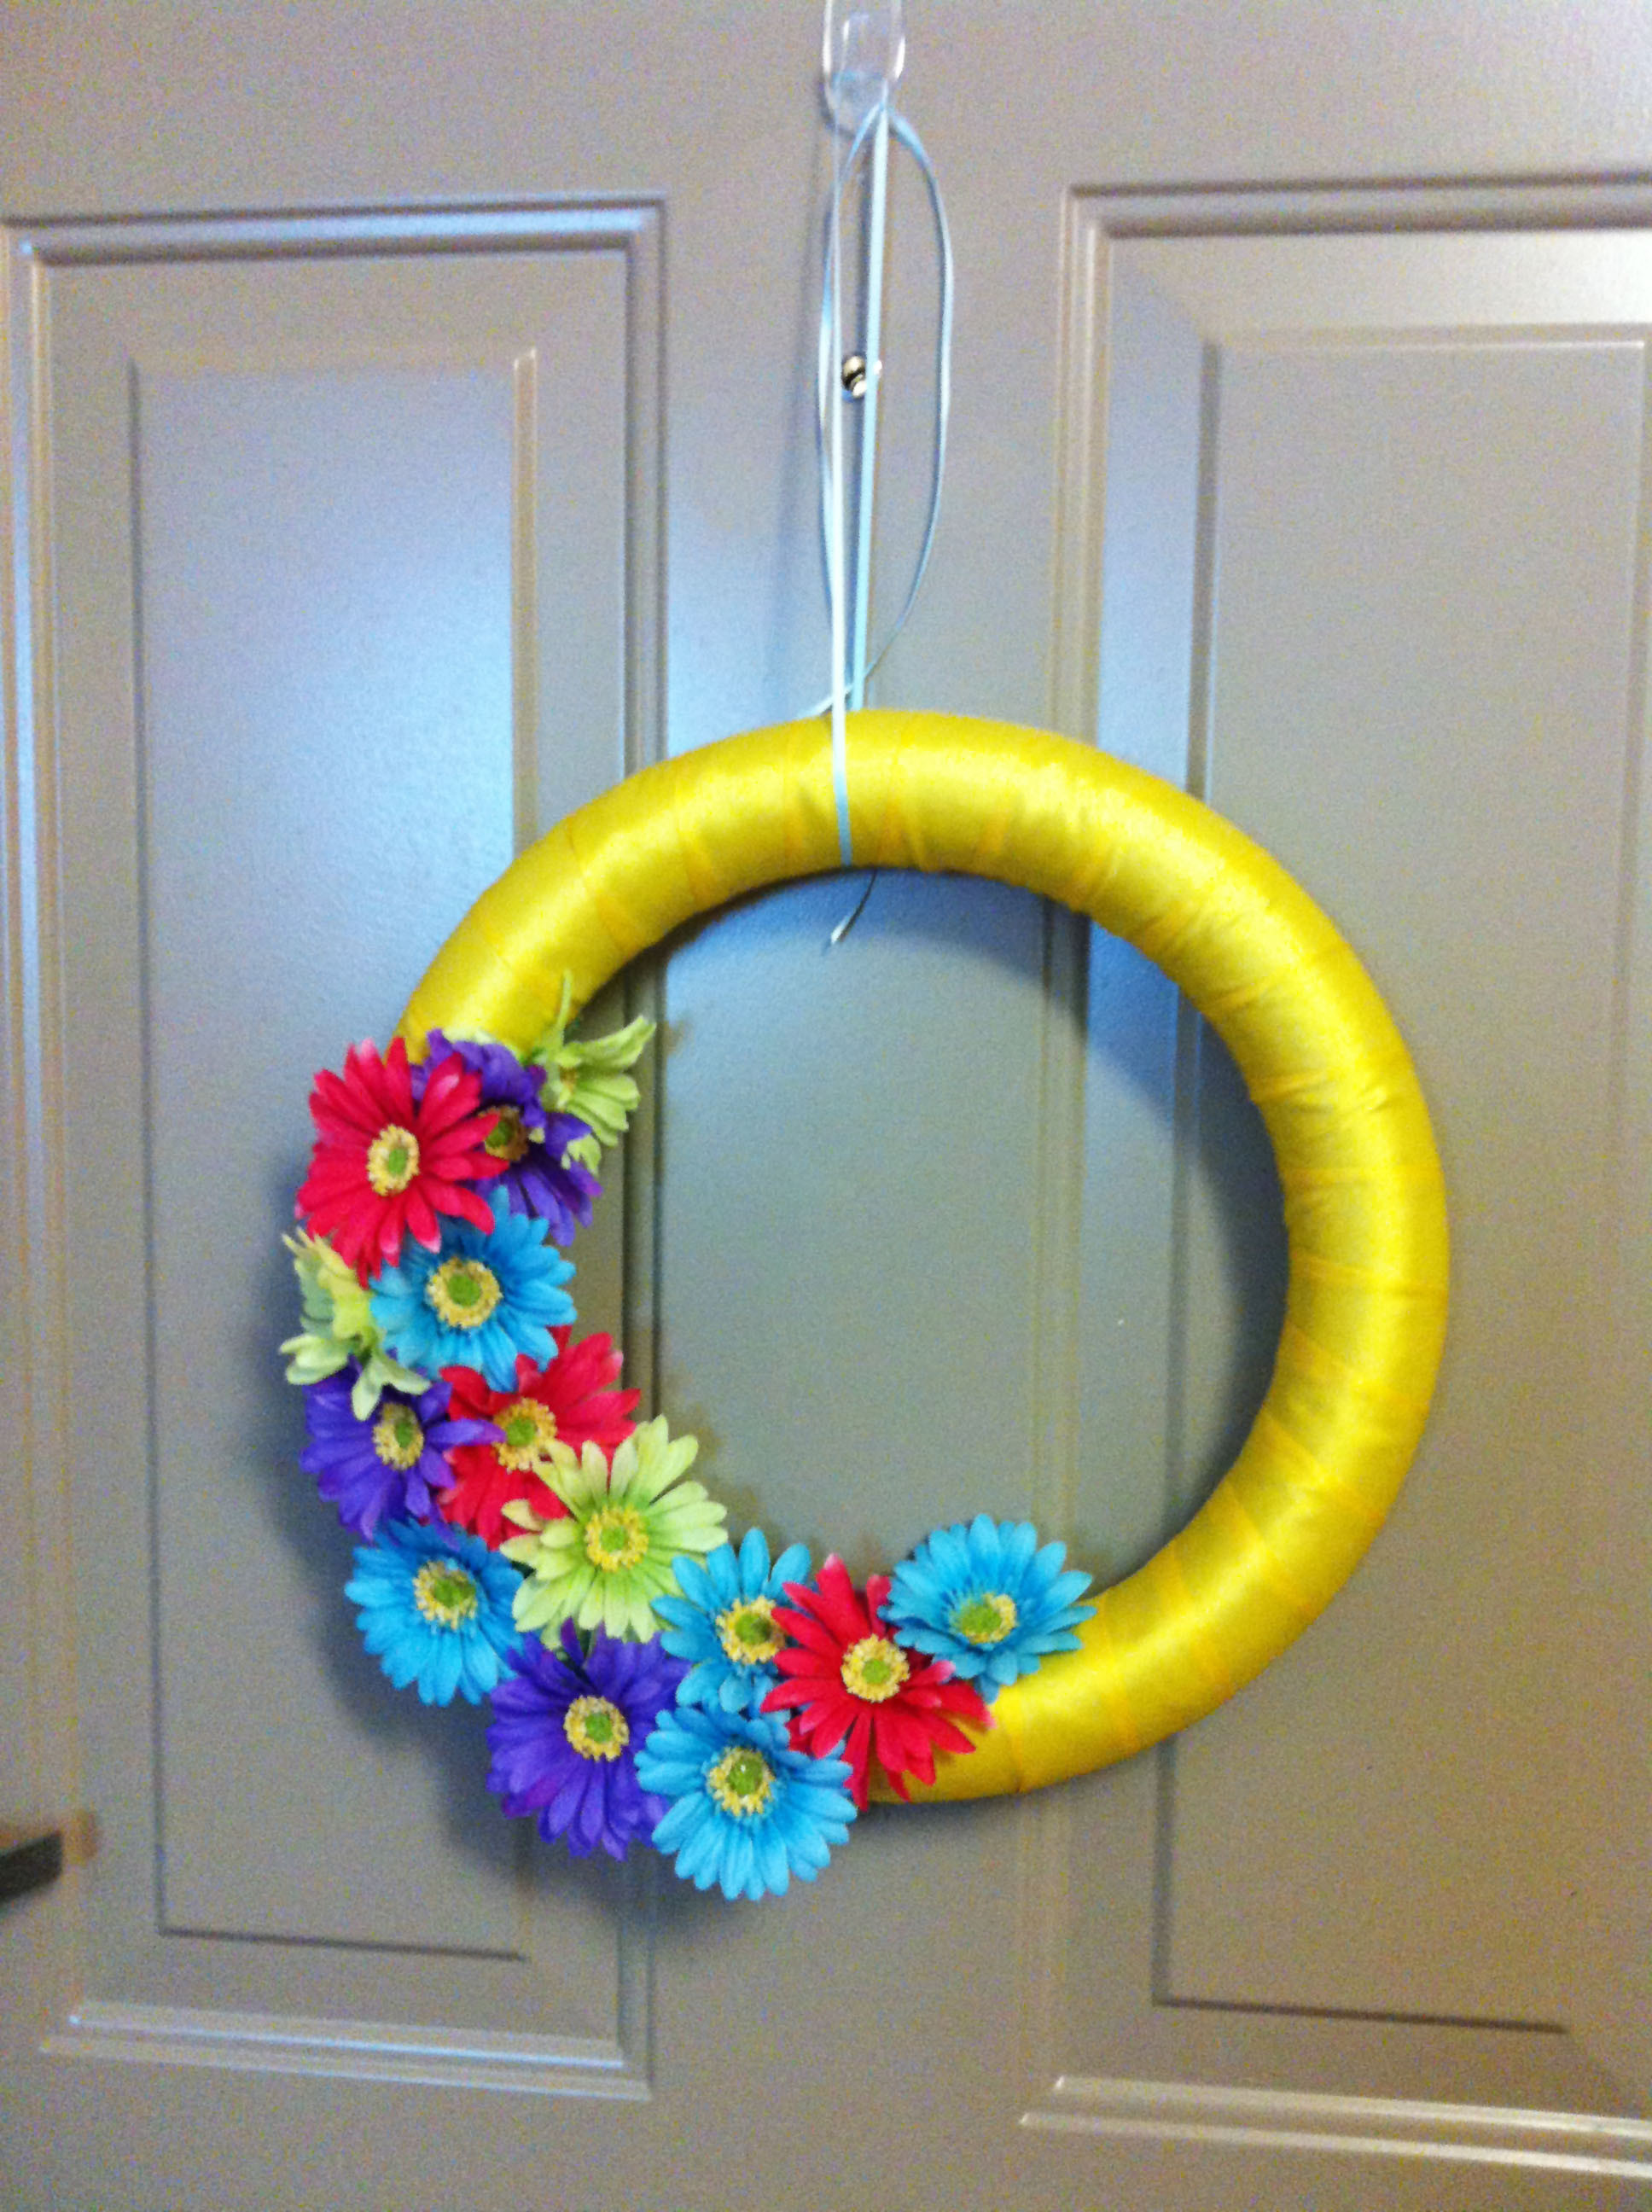 Best ideas about DIY Spring Wreath . Save or Pin diy wreath Now.